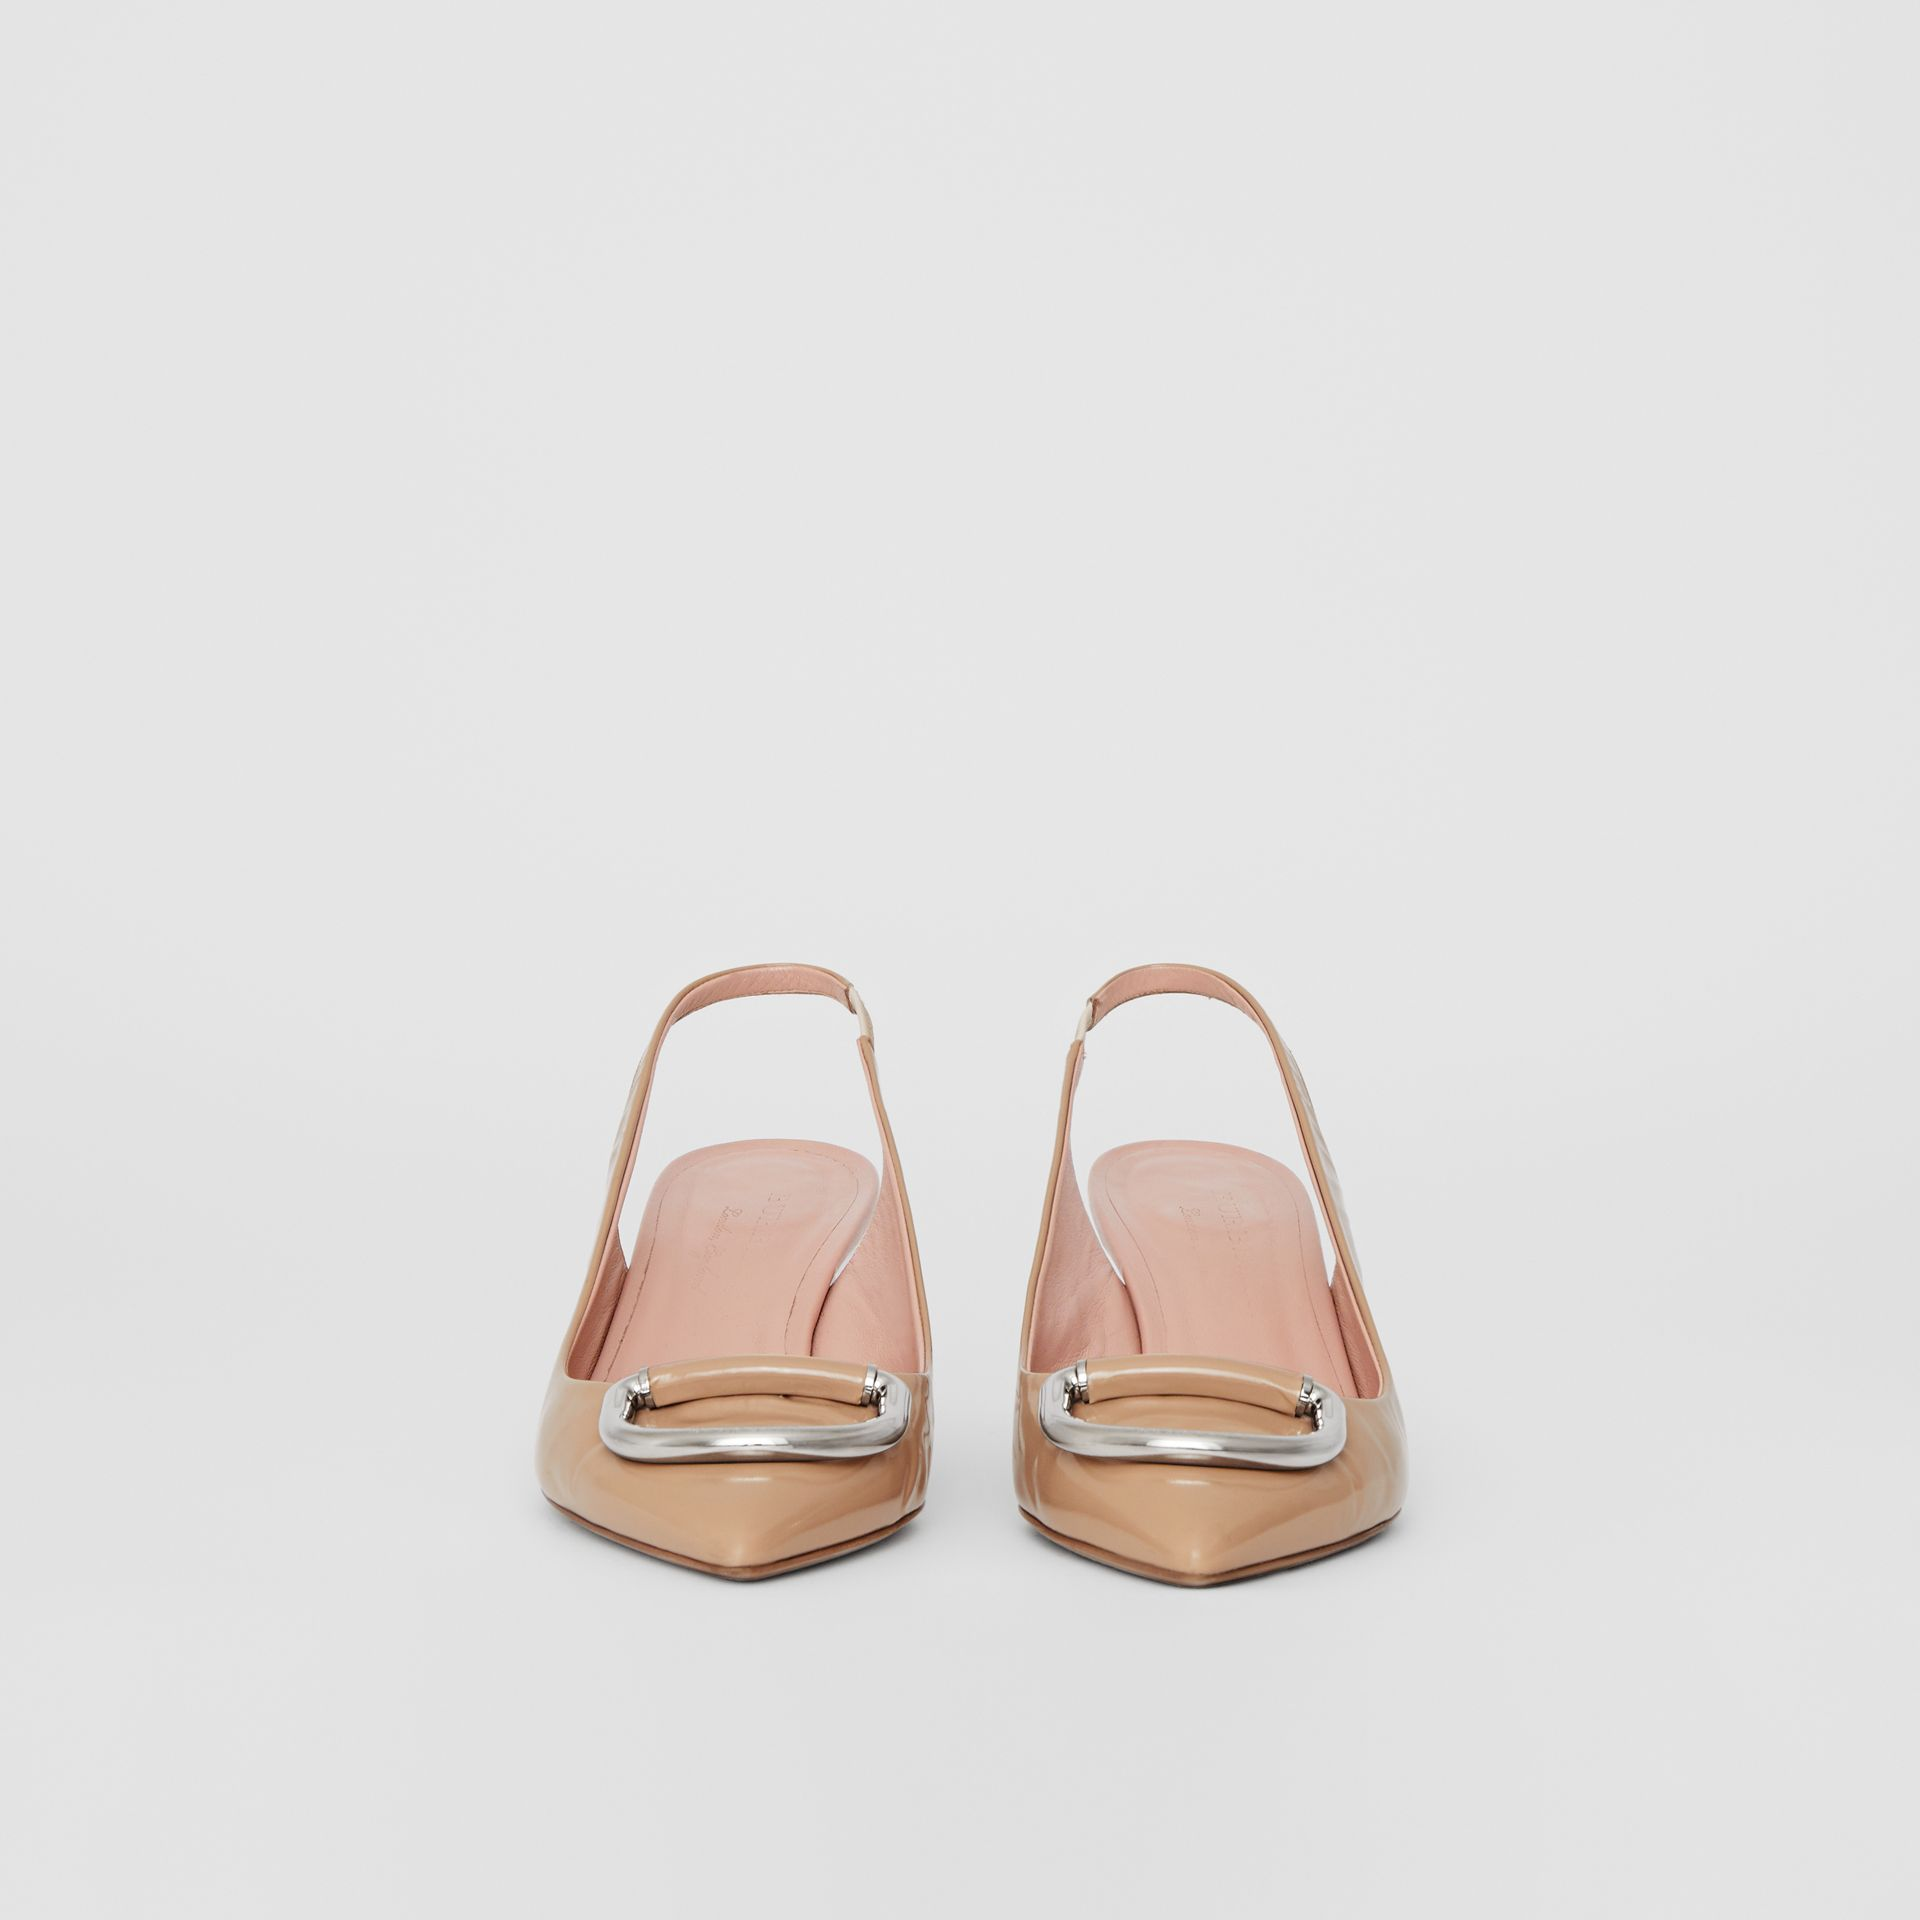 The Leather D-ring Slingback Pump in Nude Blush - Women | Burberry United Kingdom - gallery image 3